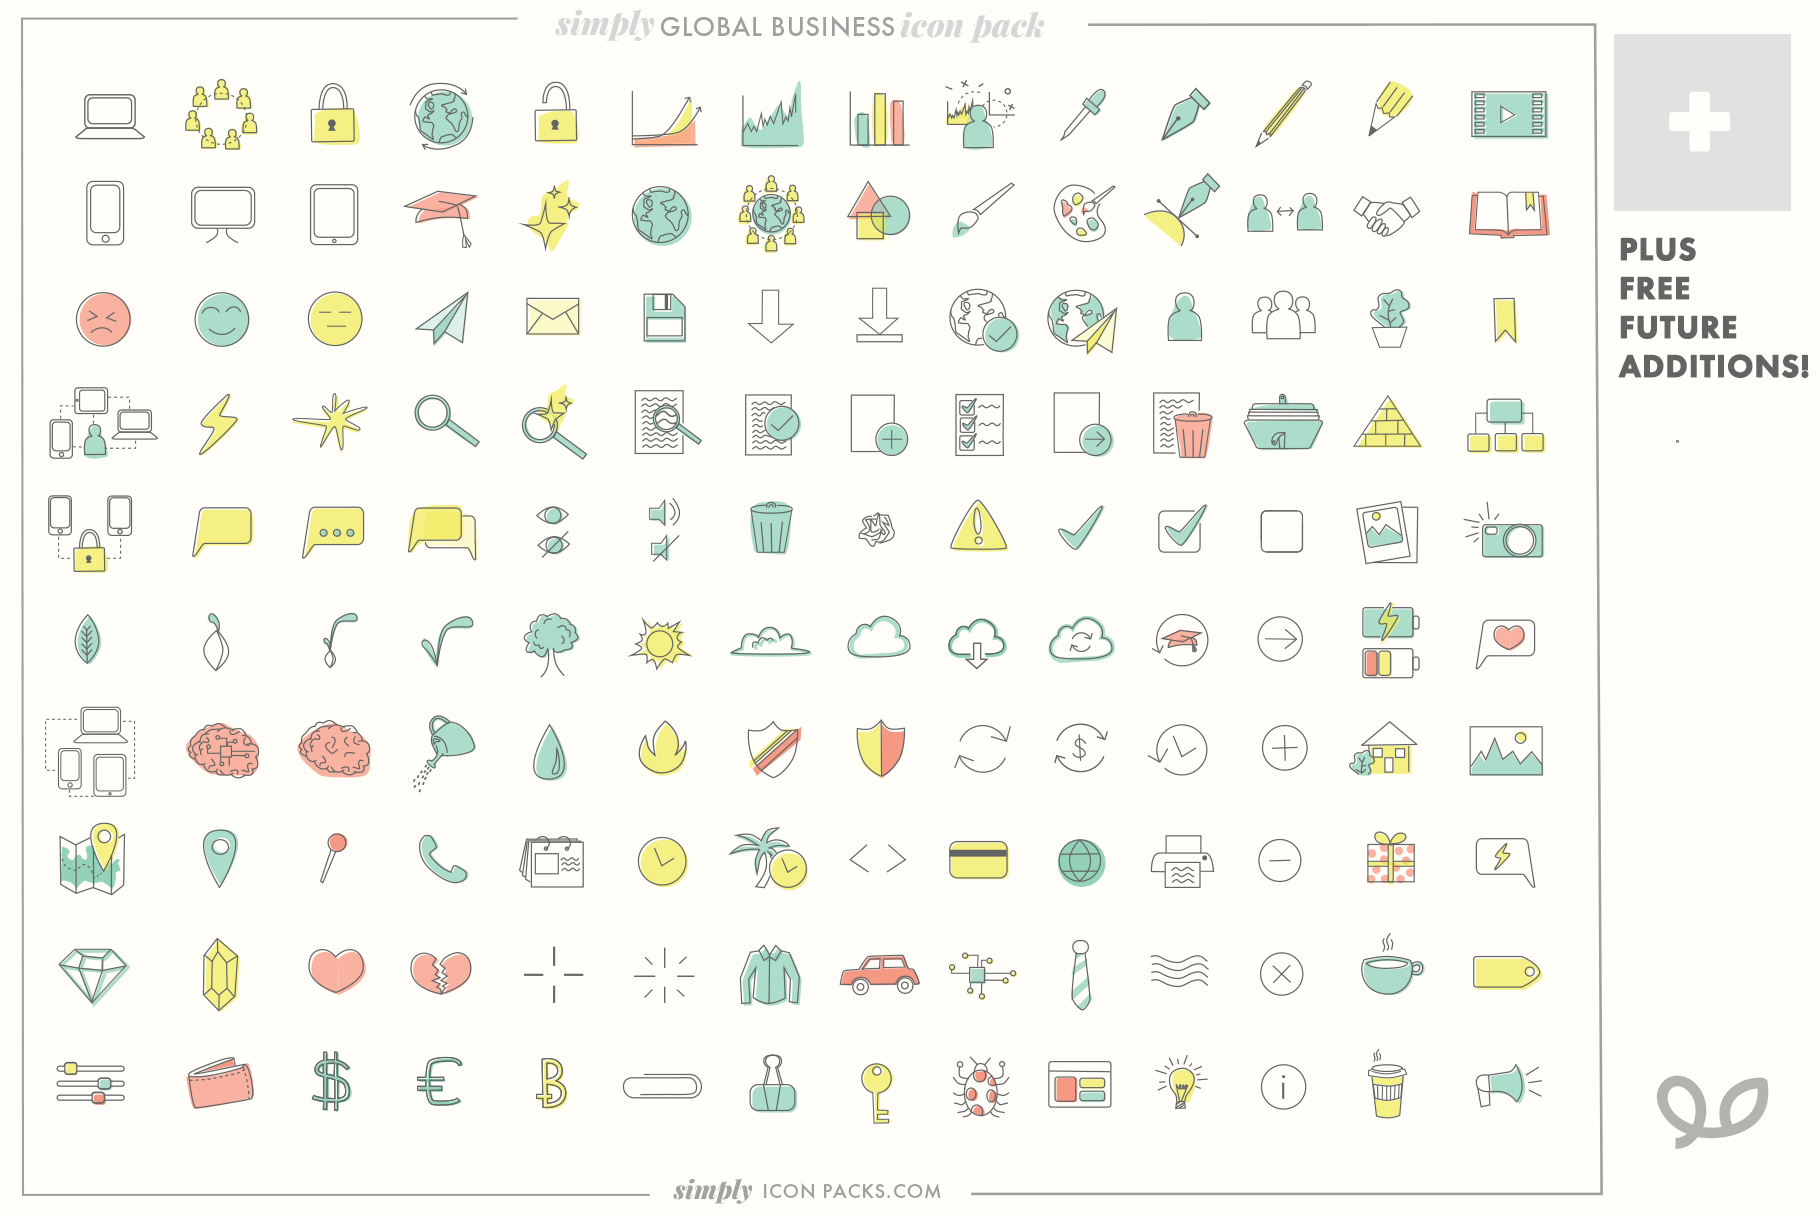 140 Modern Business icons- Simply Icon Packs